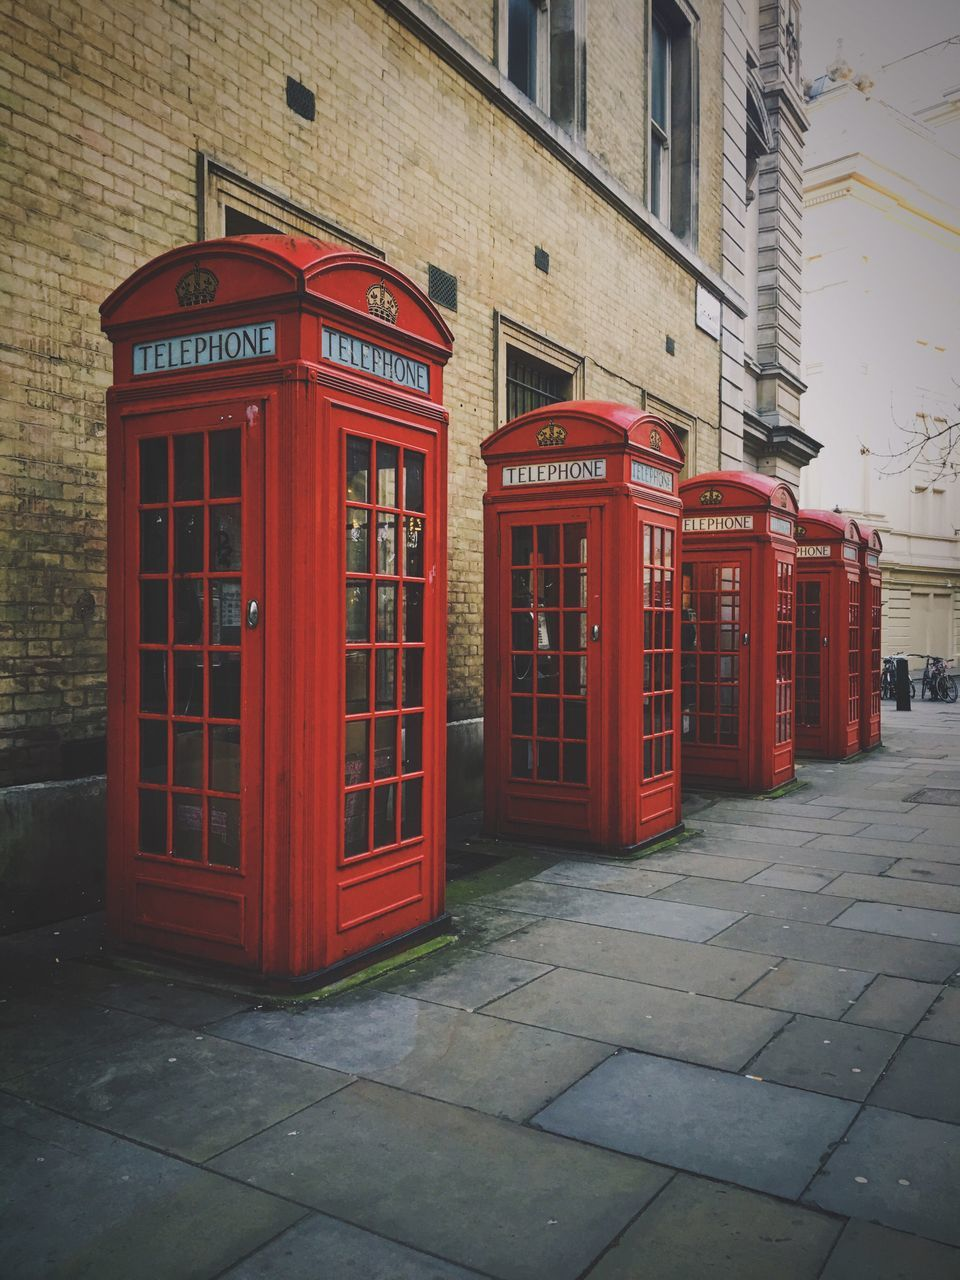 communication, telephone booth, red, building exterior, built structure, pay phone, architecture, connection, outdoors, convenience, day, telephone, no people, street, telecommunications equipment, technology, city